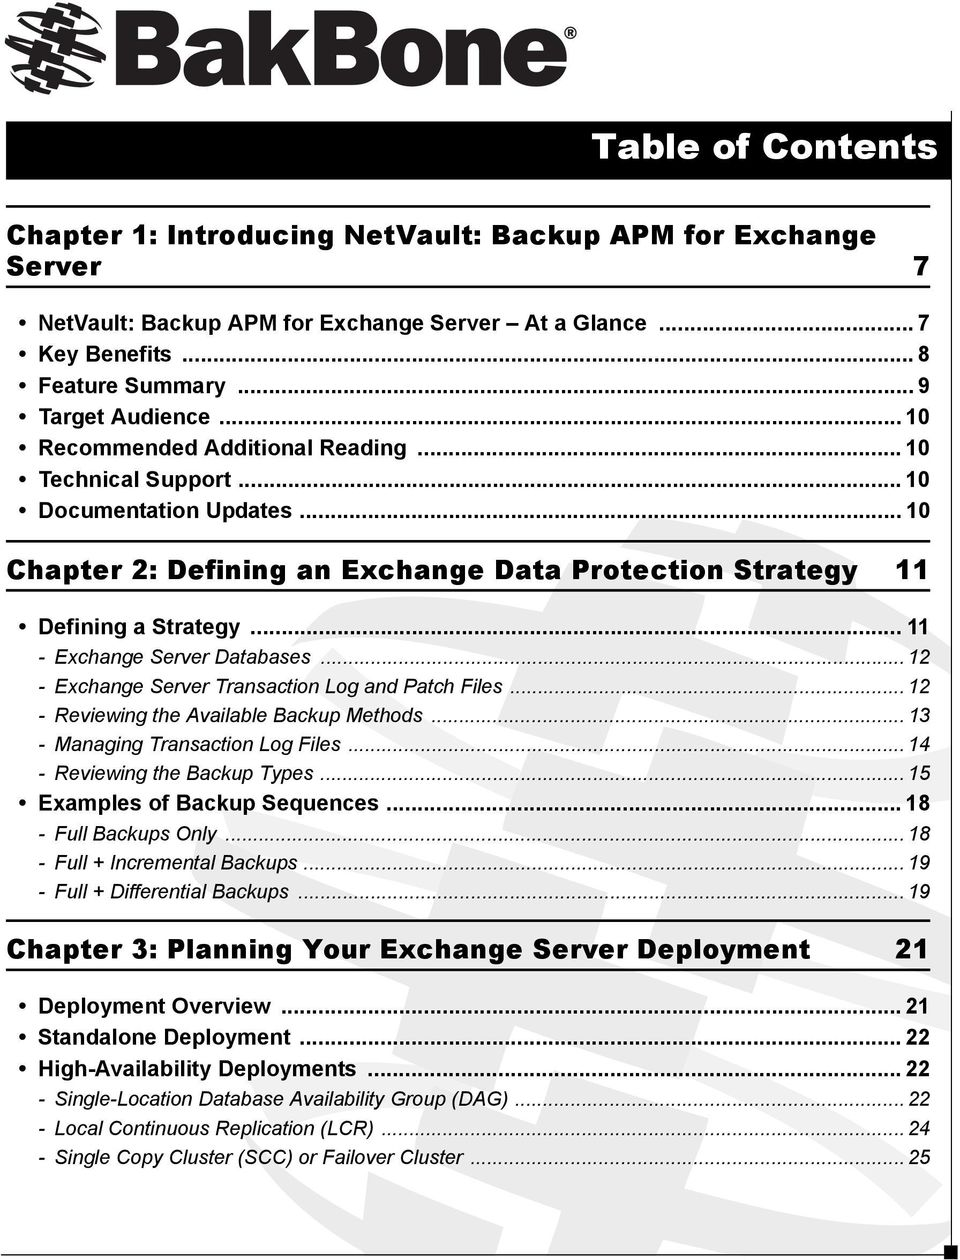 .. 11 - Exchange Server Databases... 12 - Exchange Server Transaction Log and Patch Files... 12 - Reviewing the Available Backup Methods... 13 - Managing Transaction Log Files.